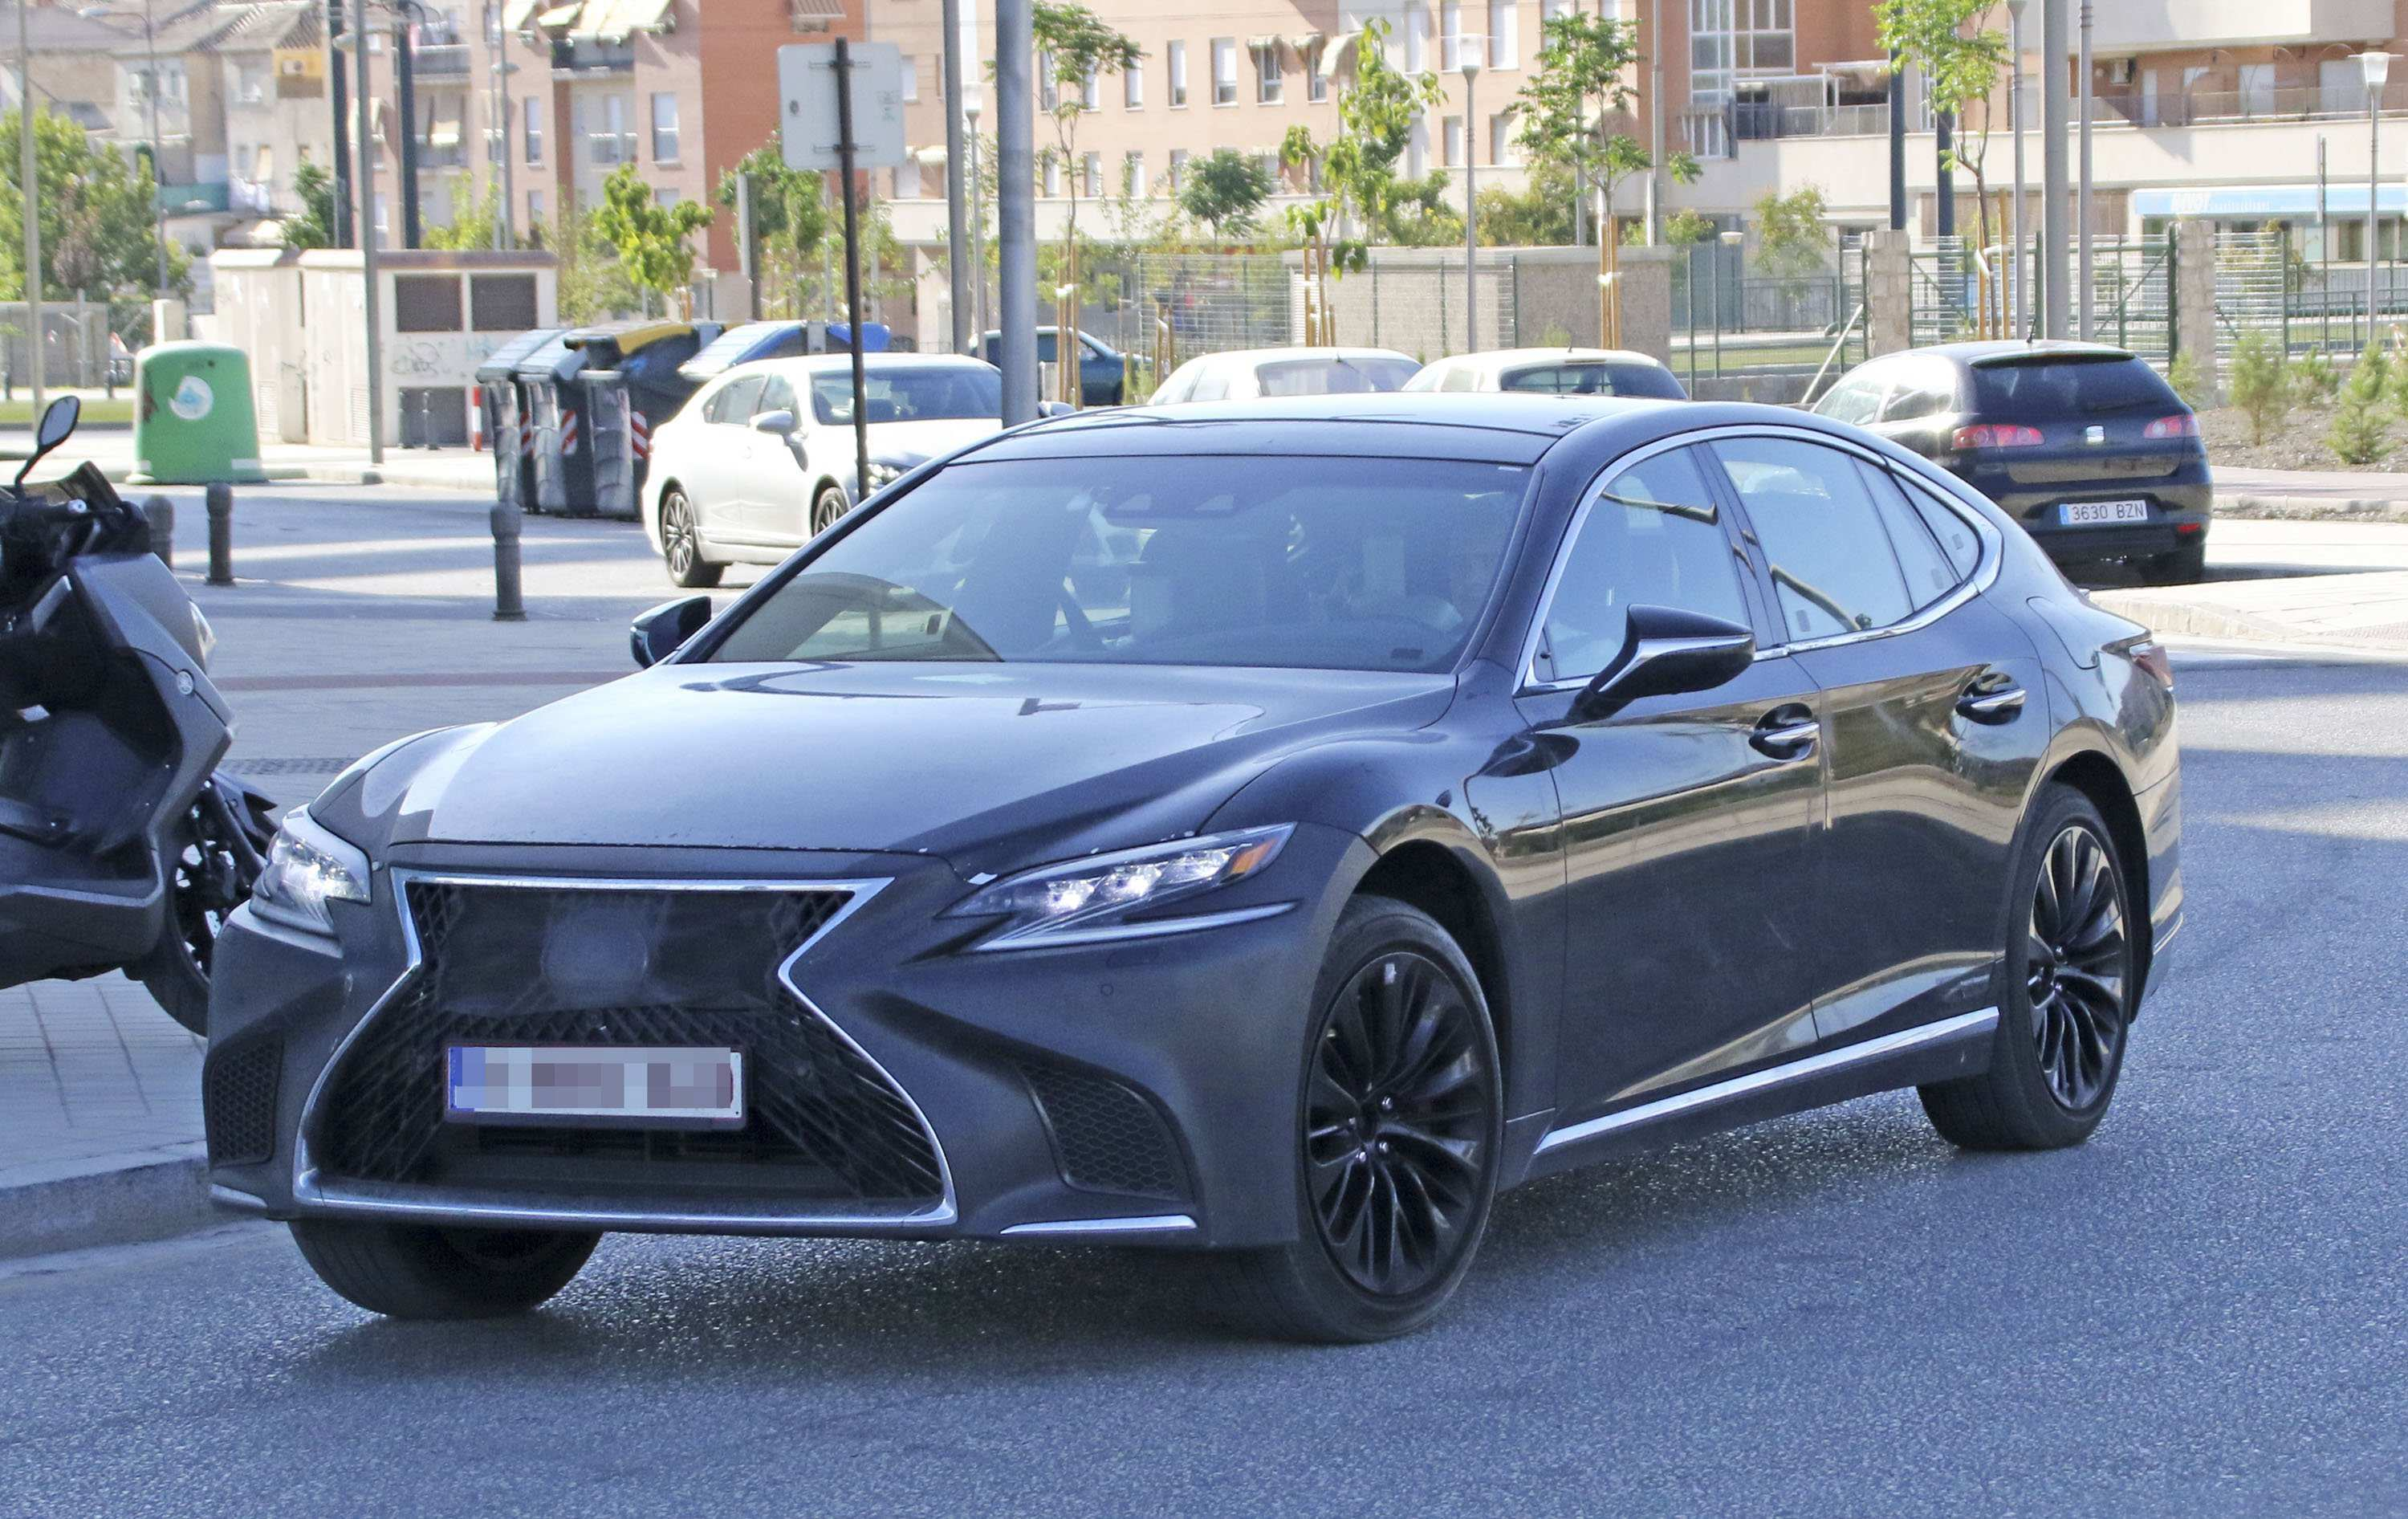 97 A Are The 2019 Lexus Out Yet Model